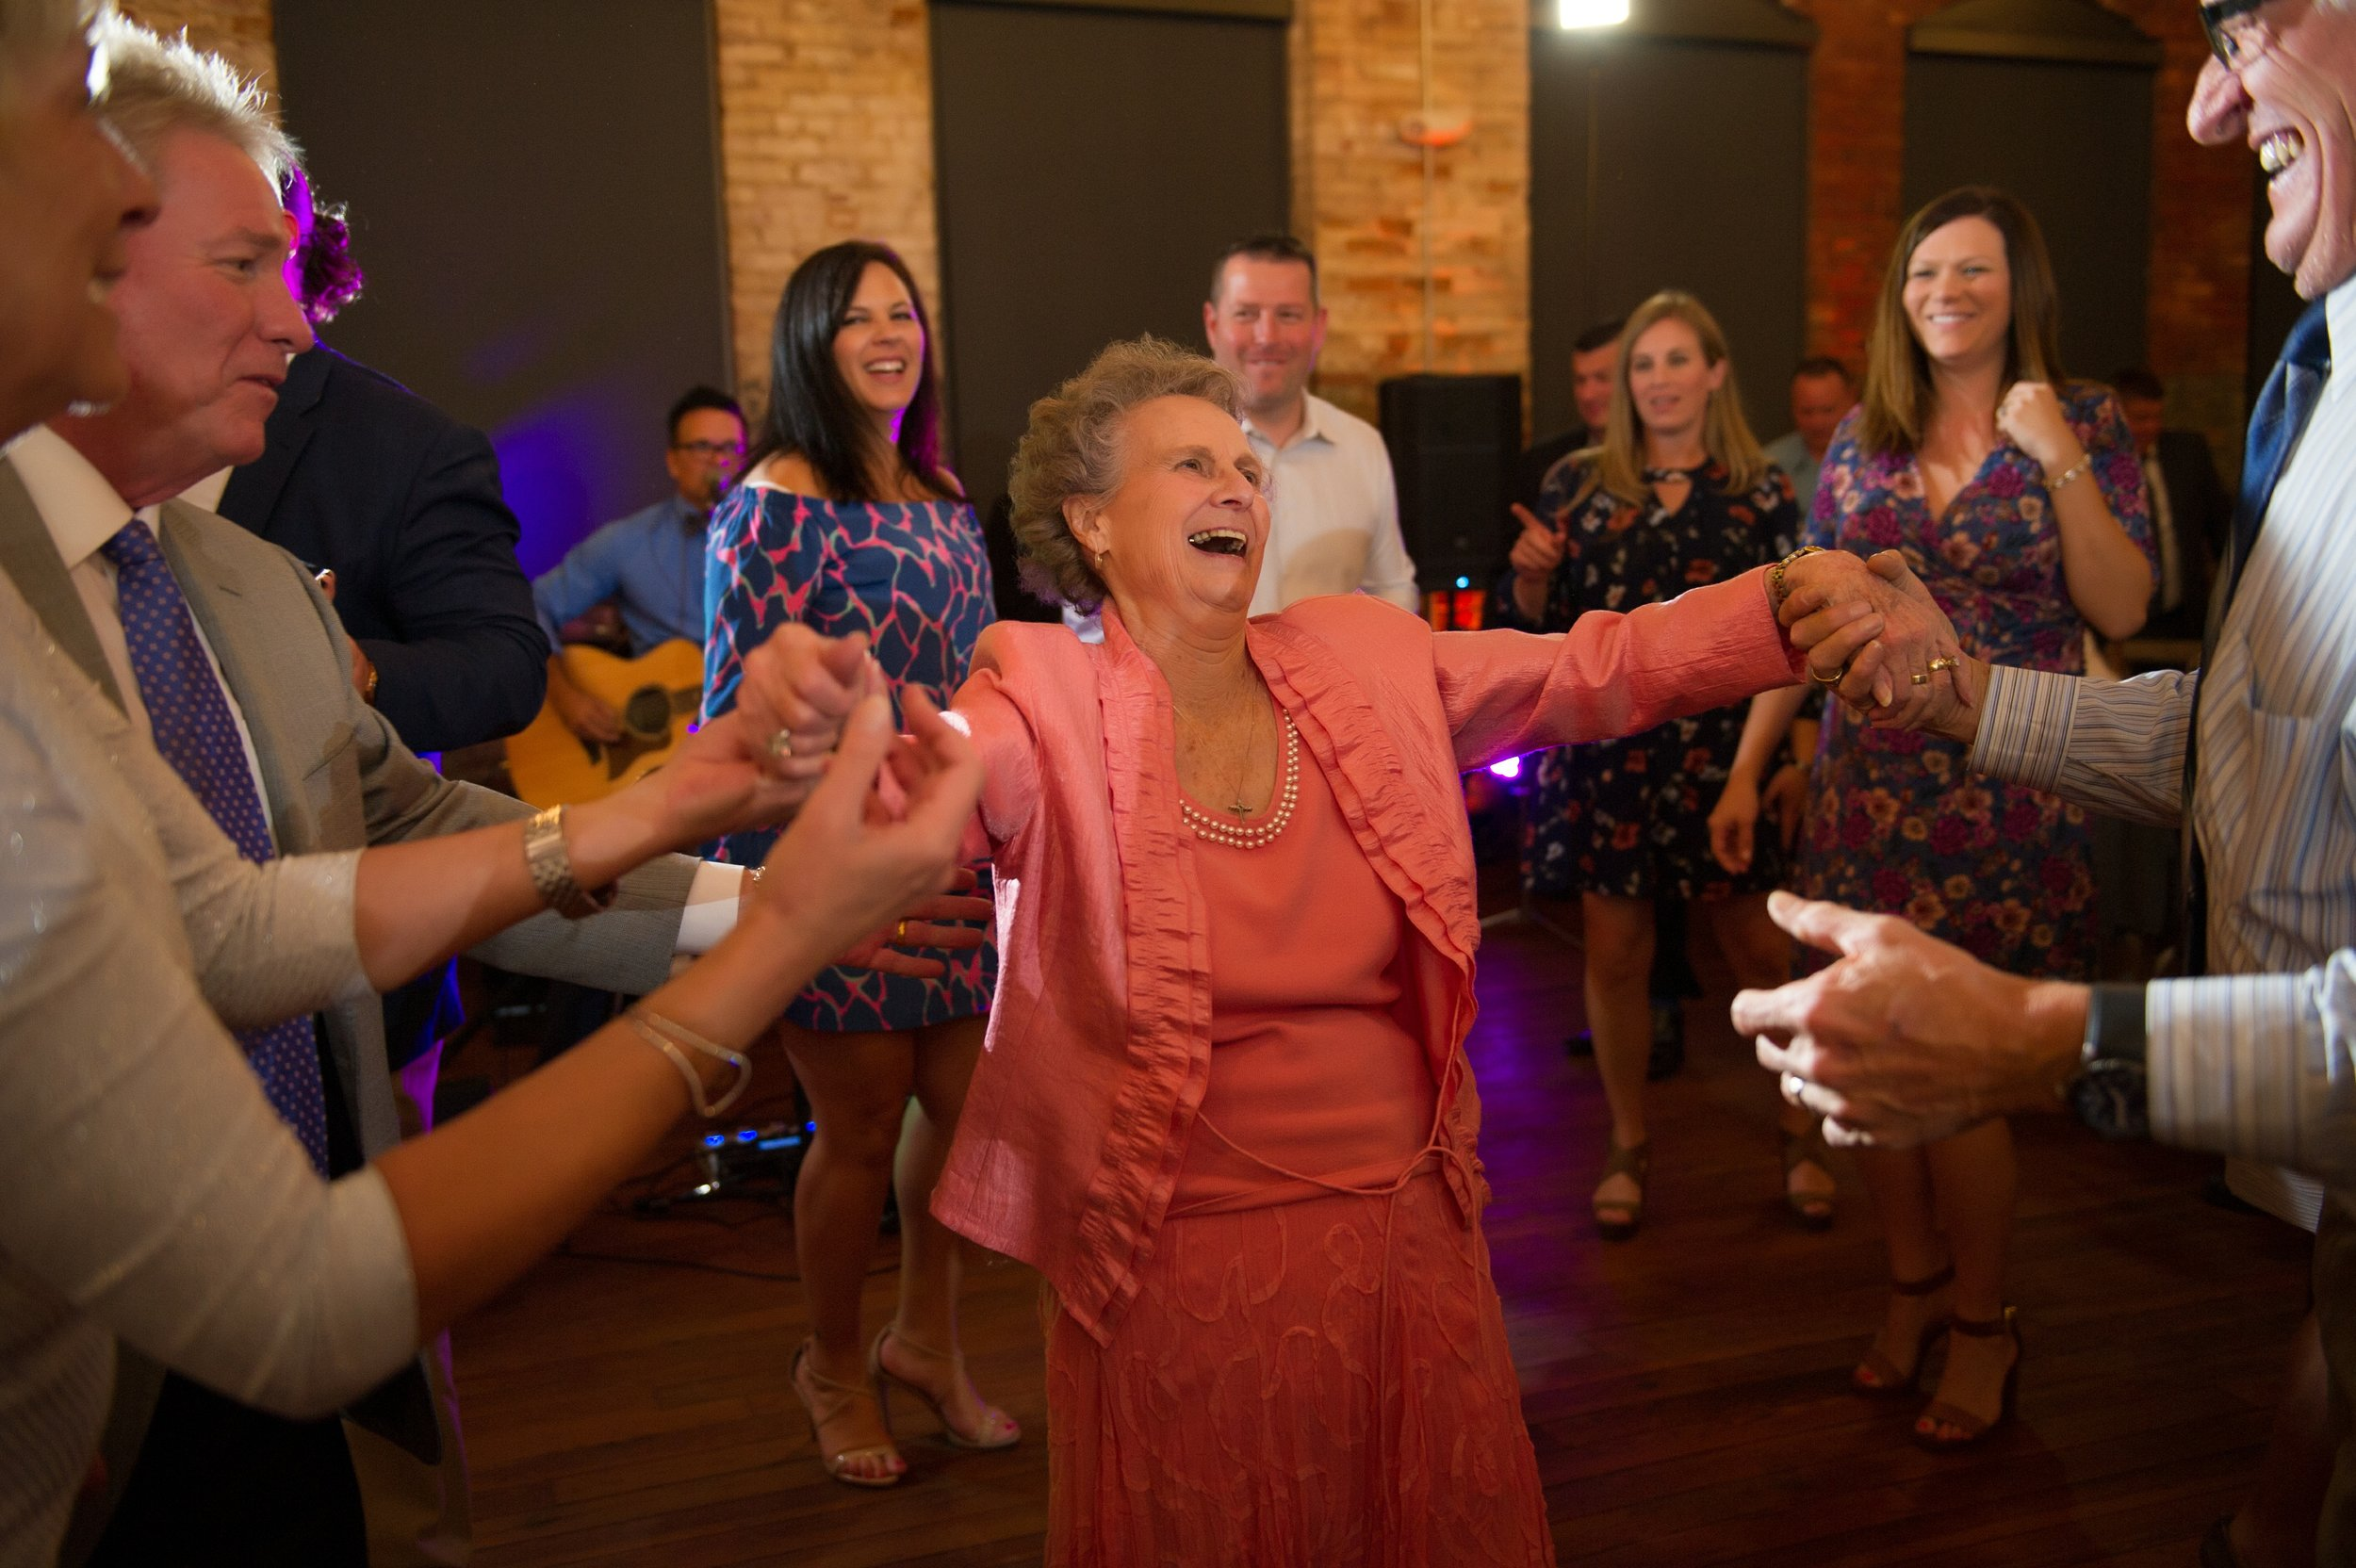 Friends and family gathered on the dance floor to celebrate the couple!